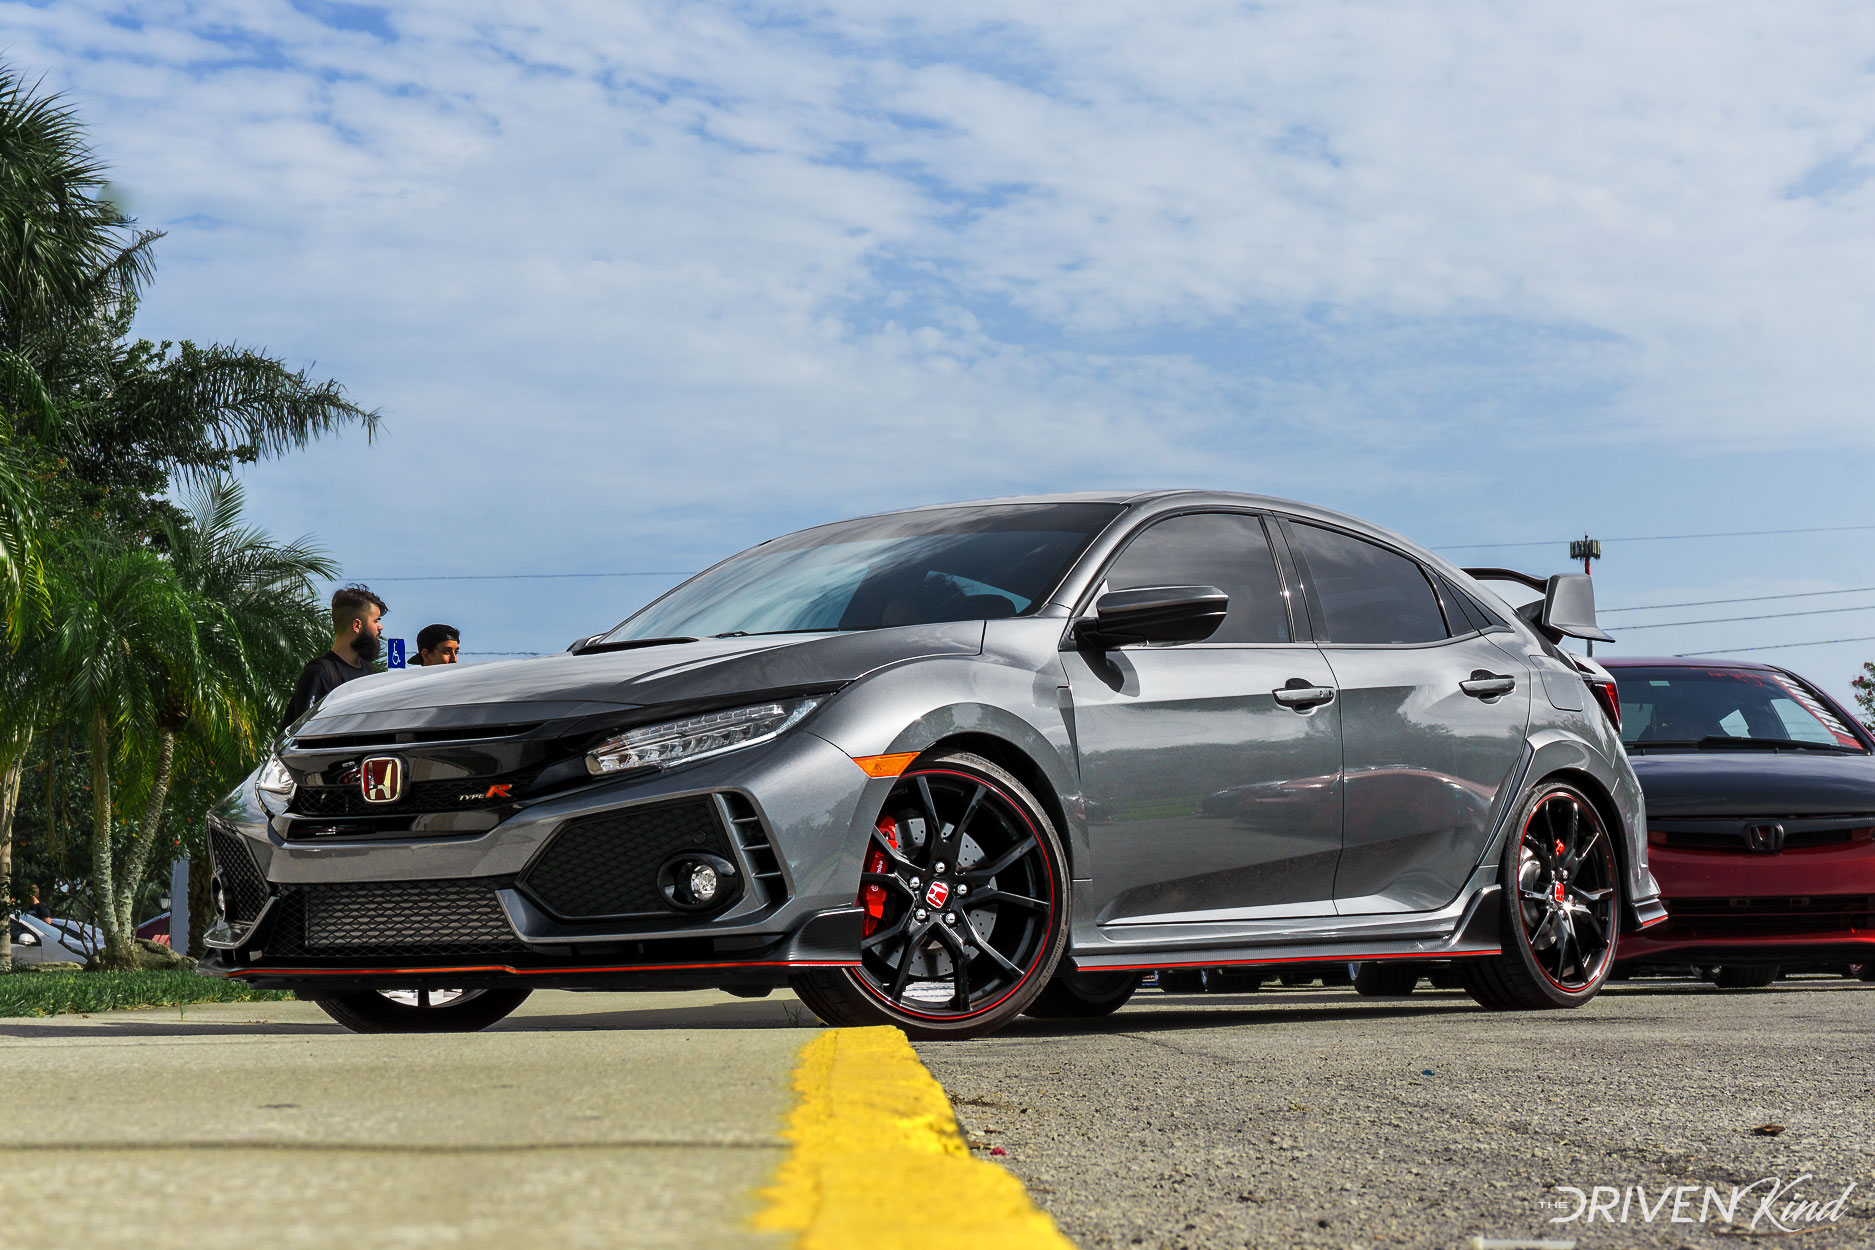 Honda Civic Type R Daily Driven Inc. Presents Florida's Finest Melbourne FL Auditorium coverage by The Driven Kind